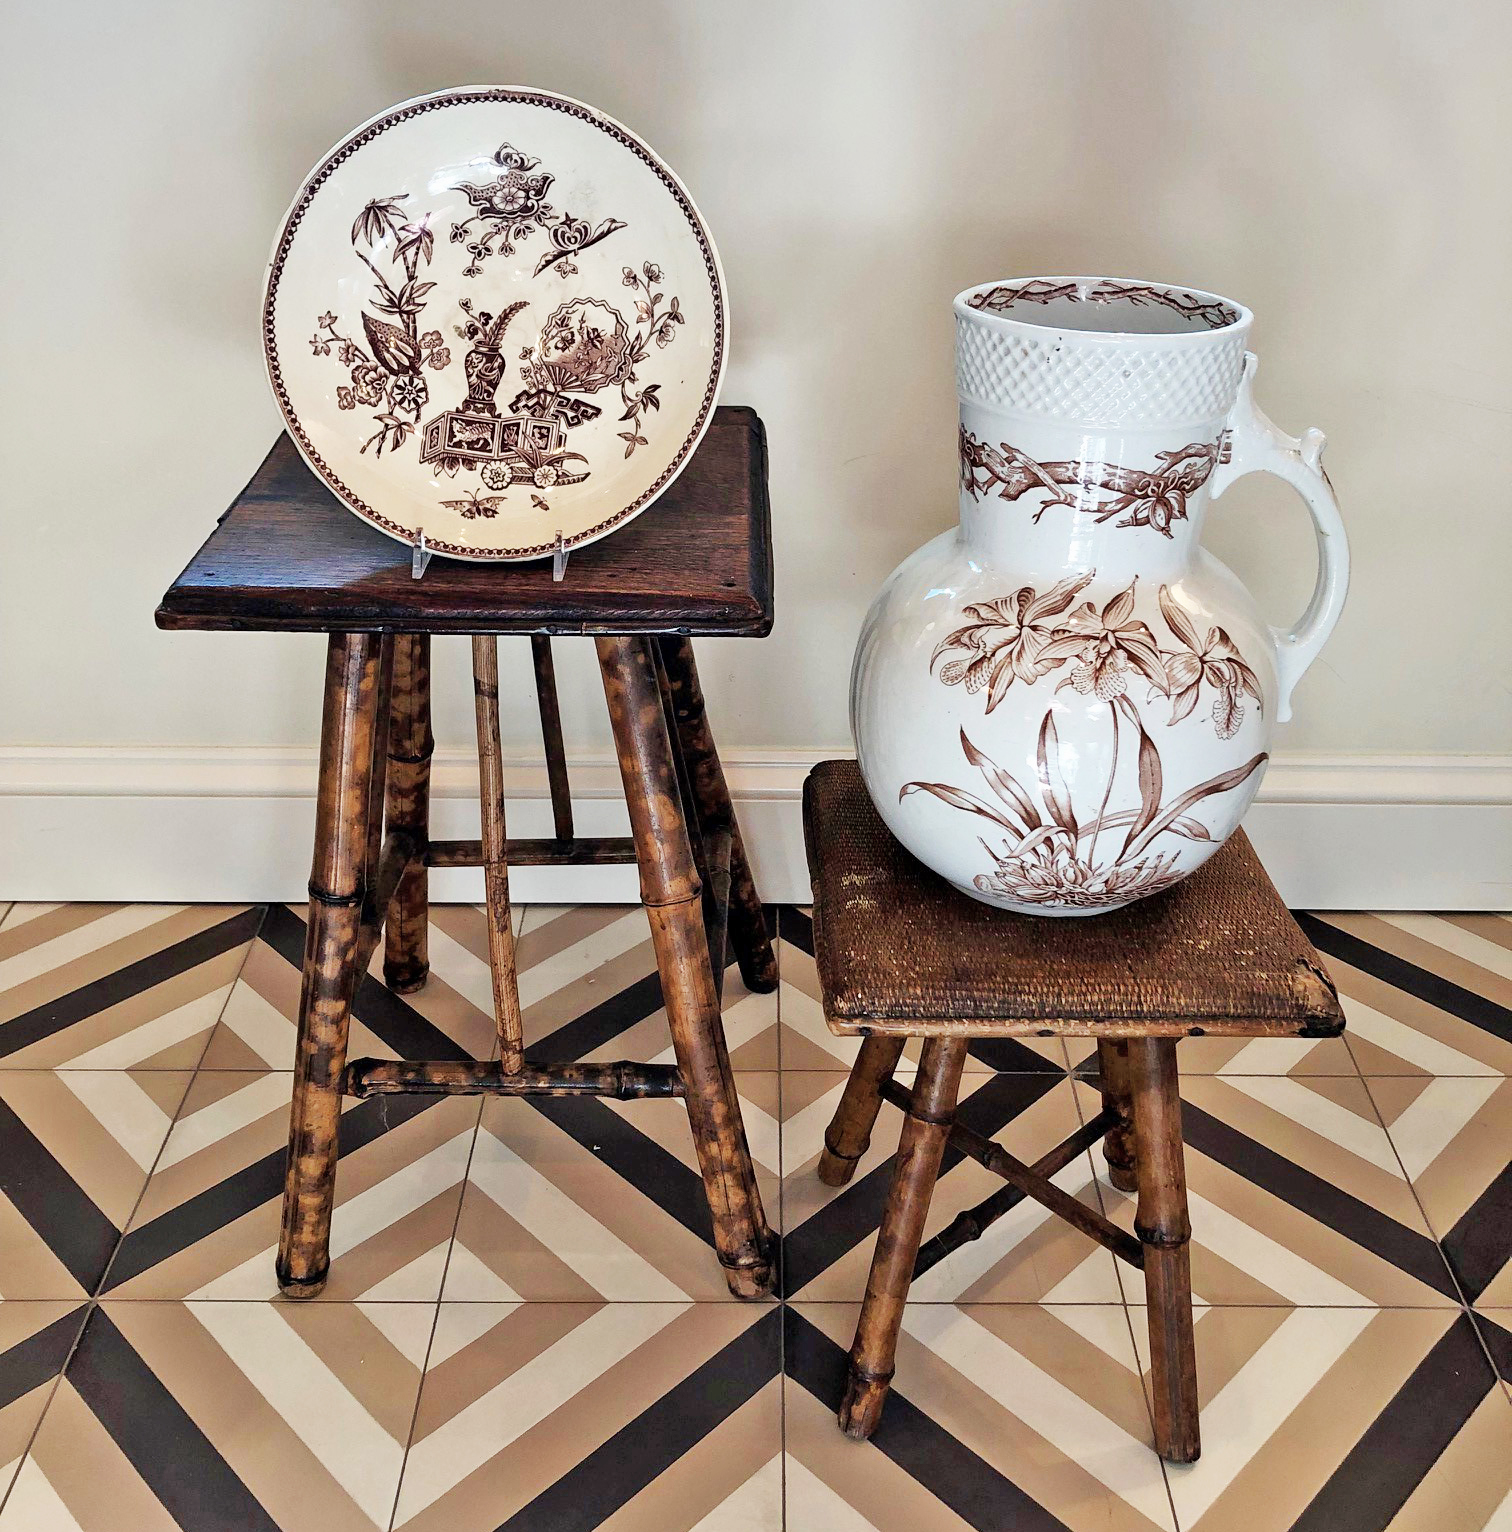 Two more tiny, antique bamboo tables I scored last week with pieces of Transferware available at our shop.